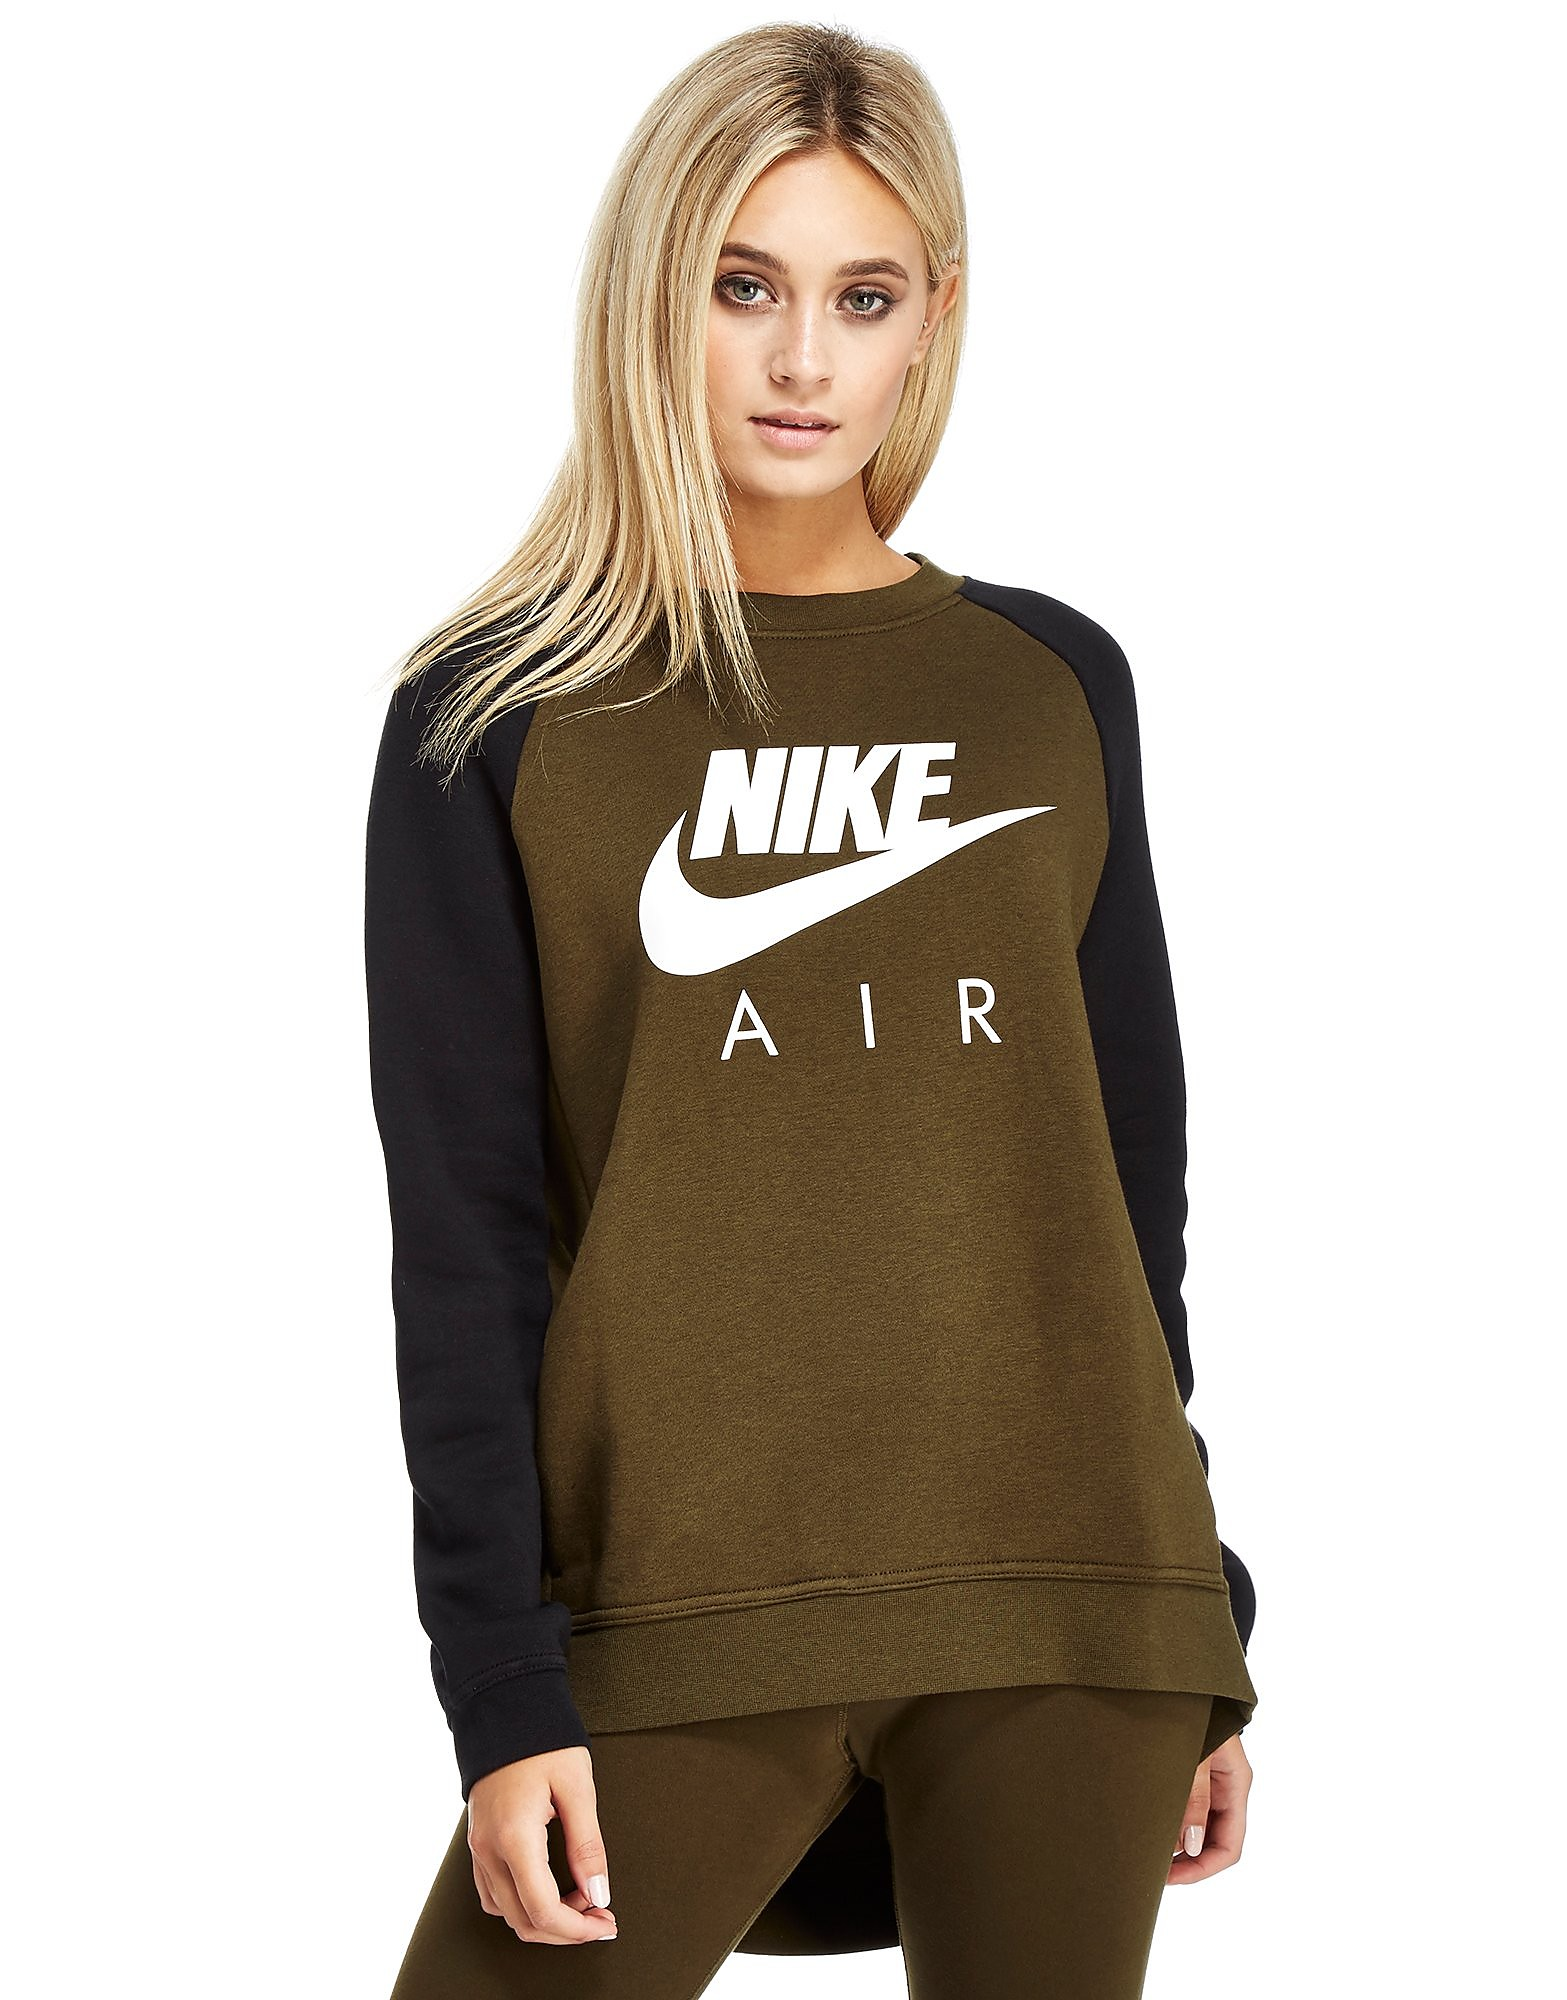 Nike Sweatshirt ras-de-cou Air